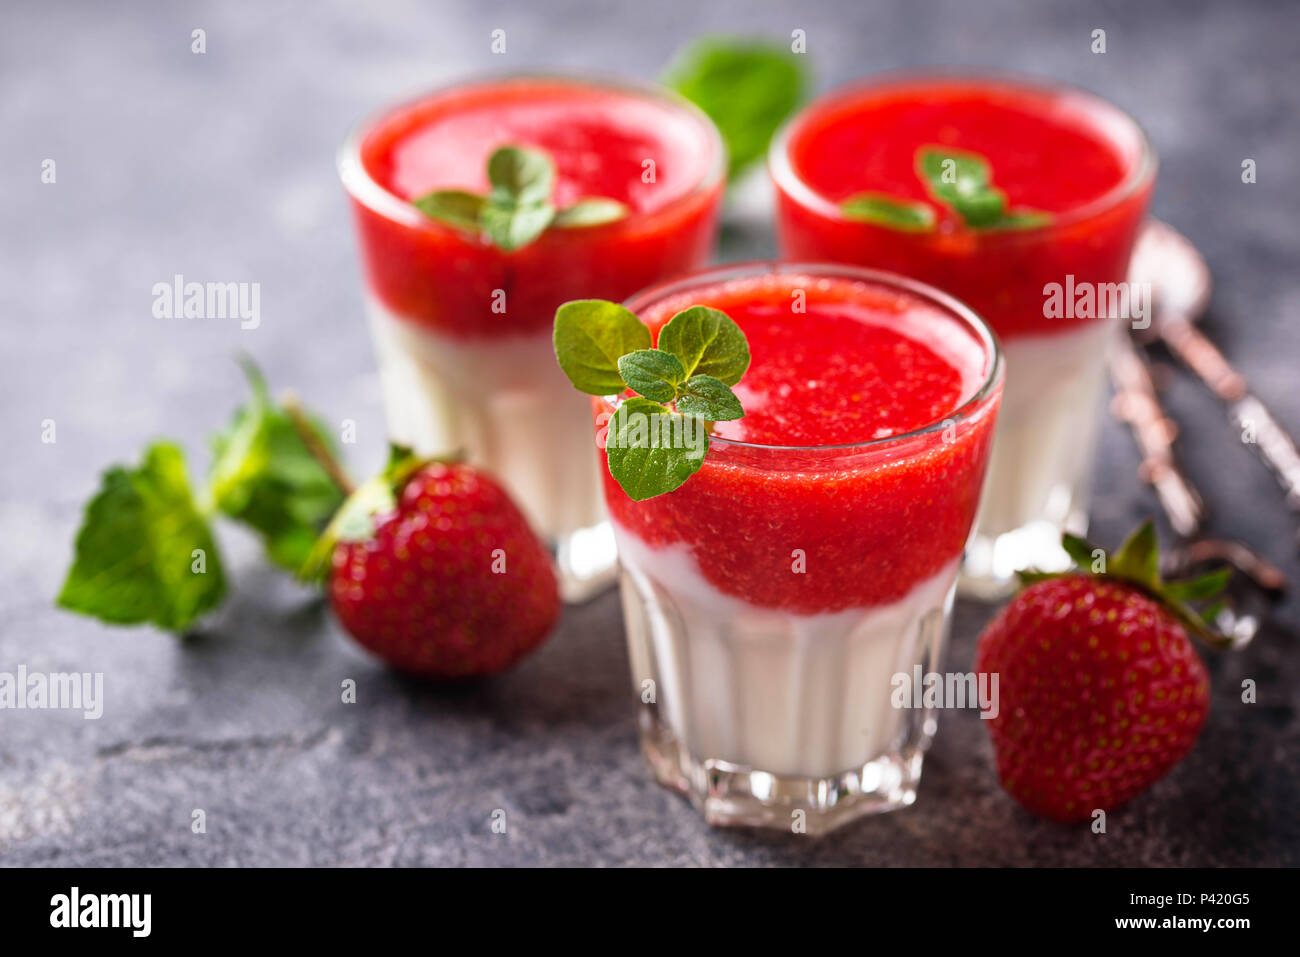 Delicious dessert panna cotta with strawberry - Stock Image